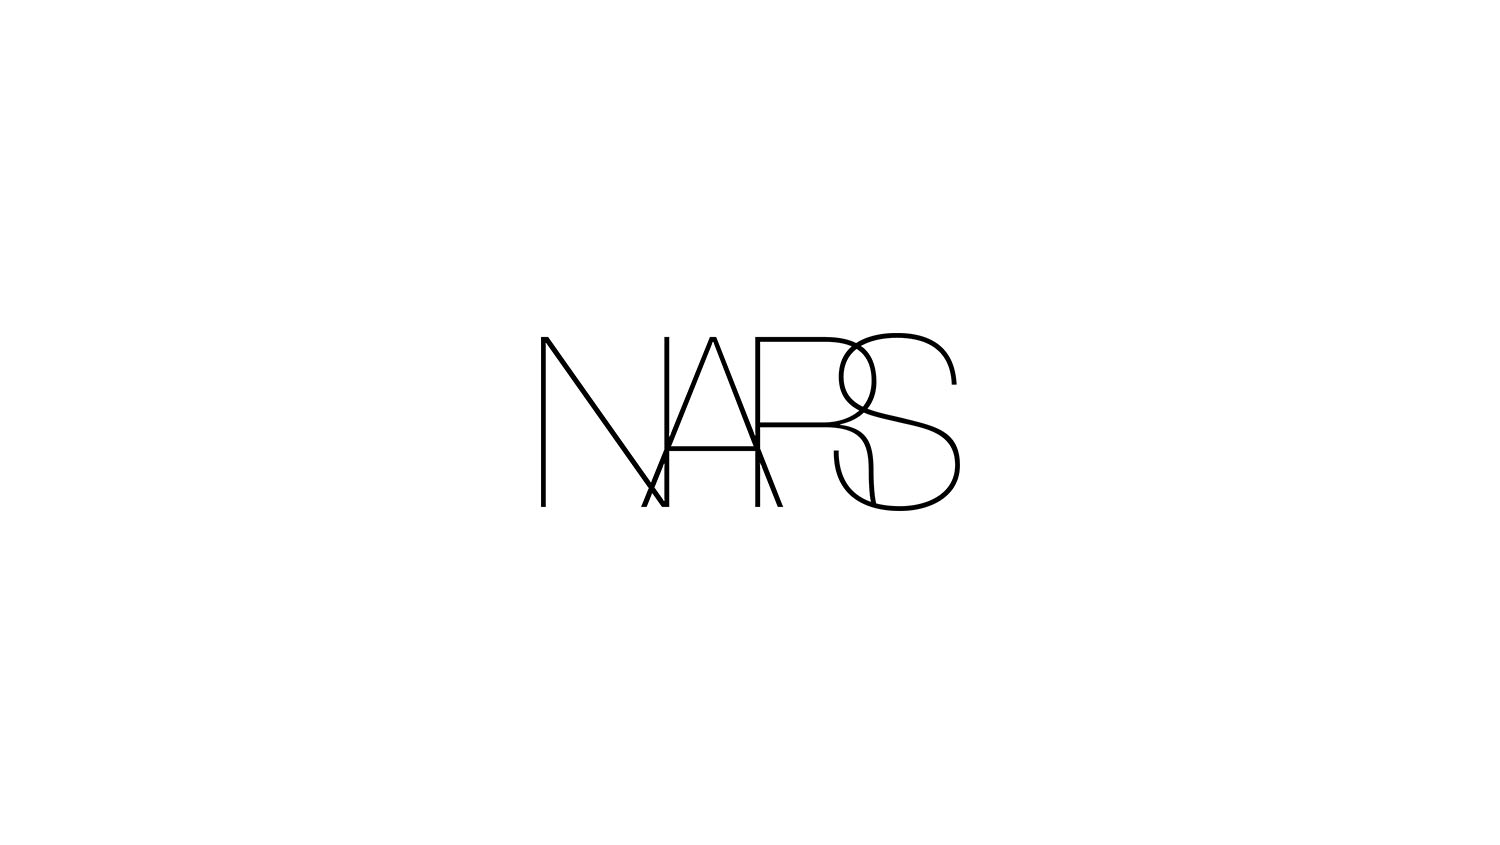 NARS Video Content